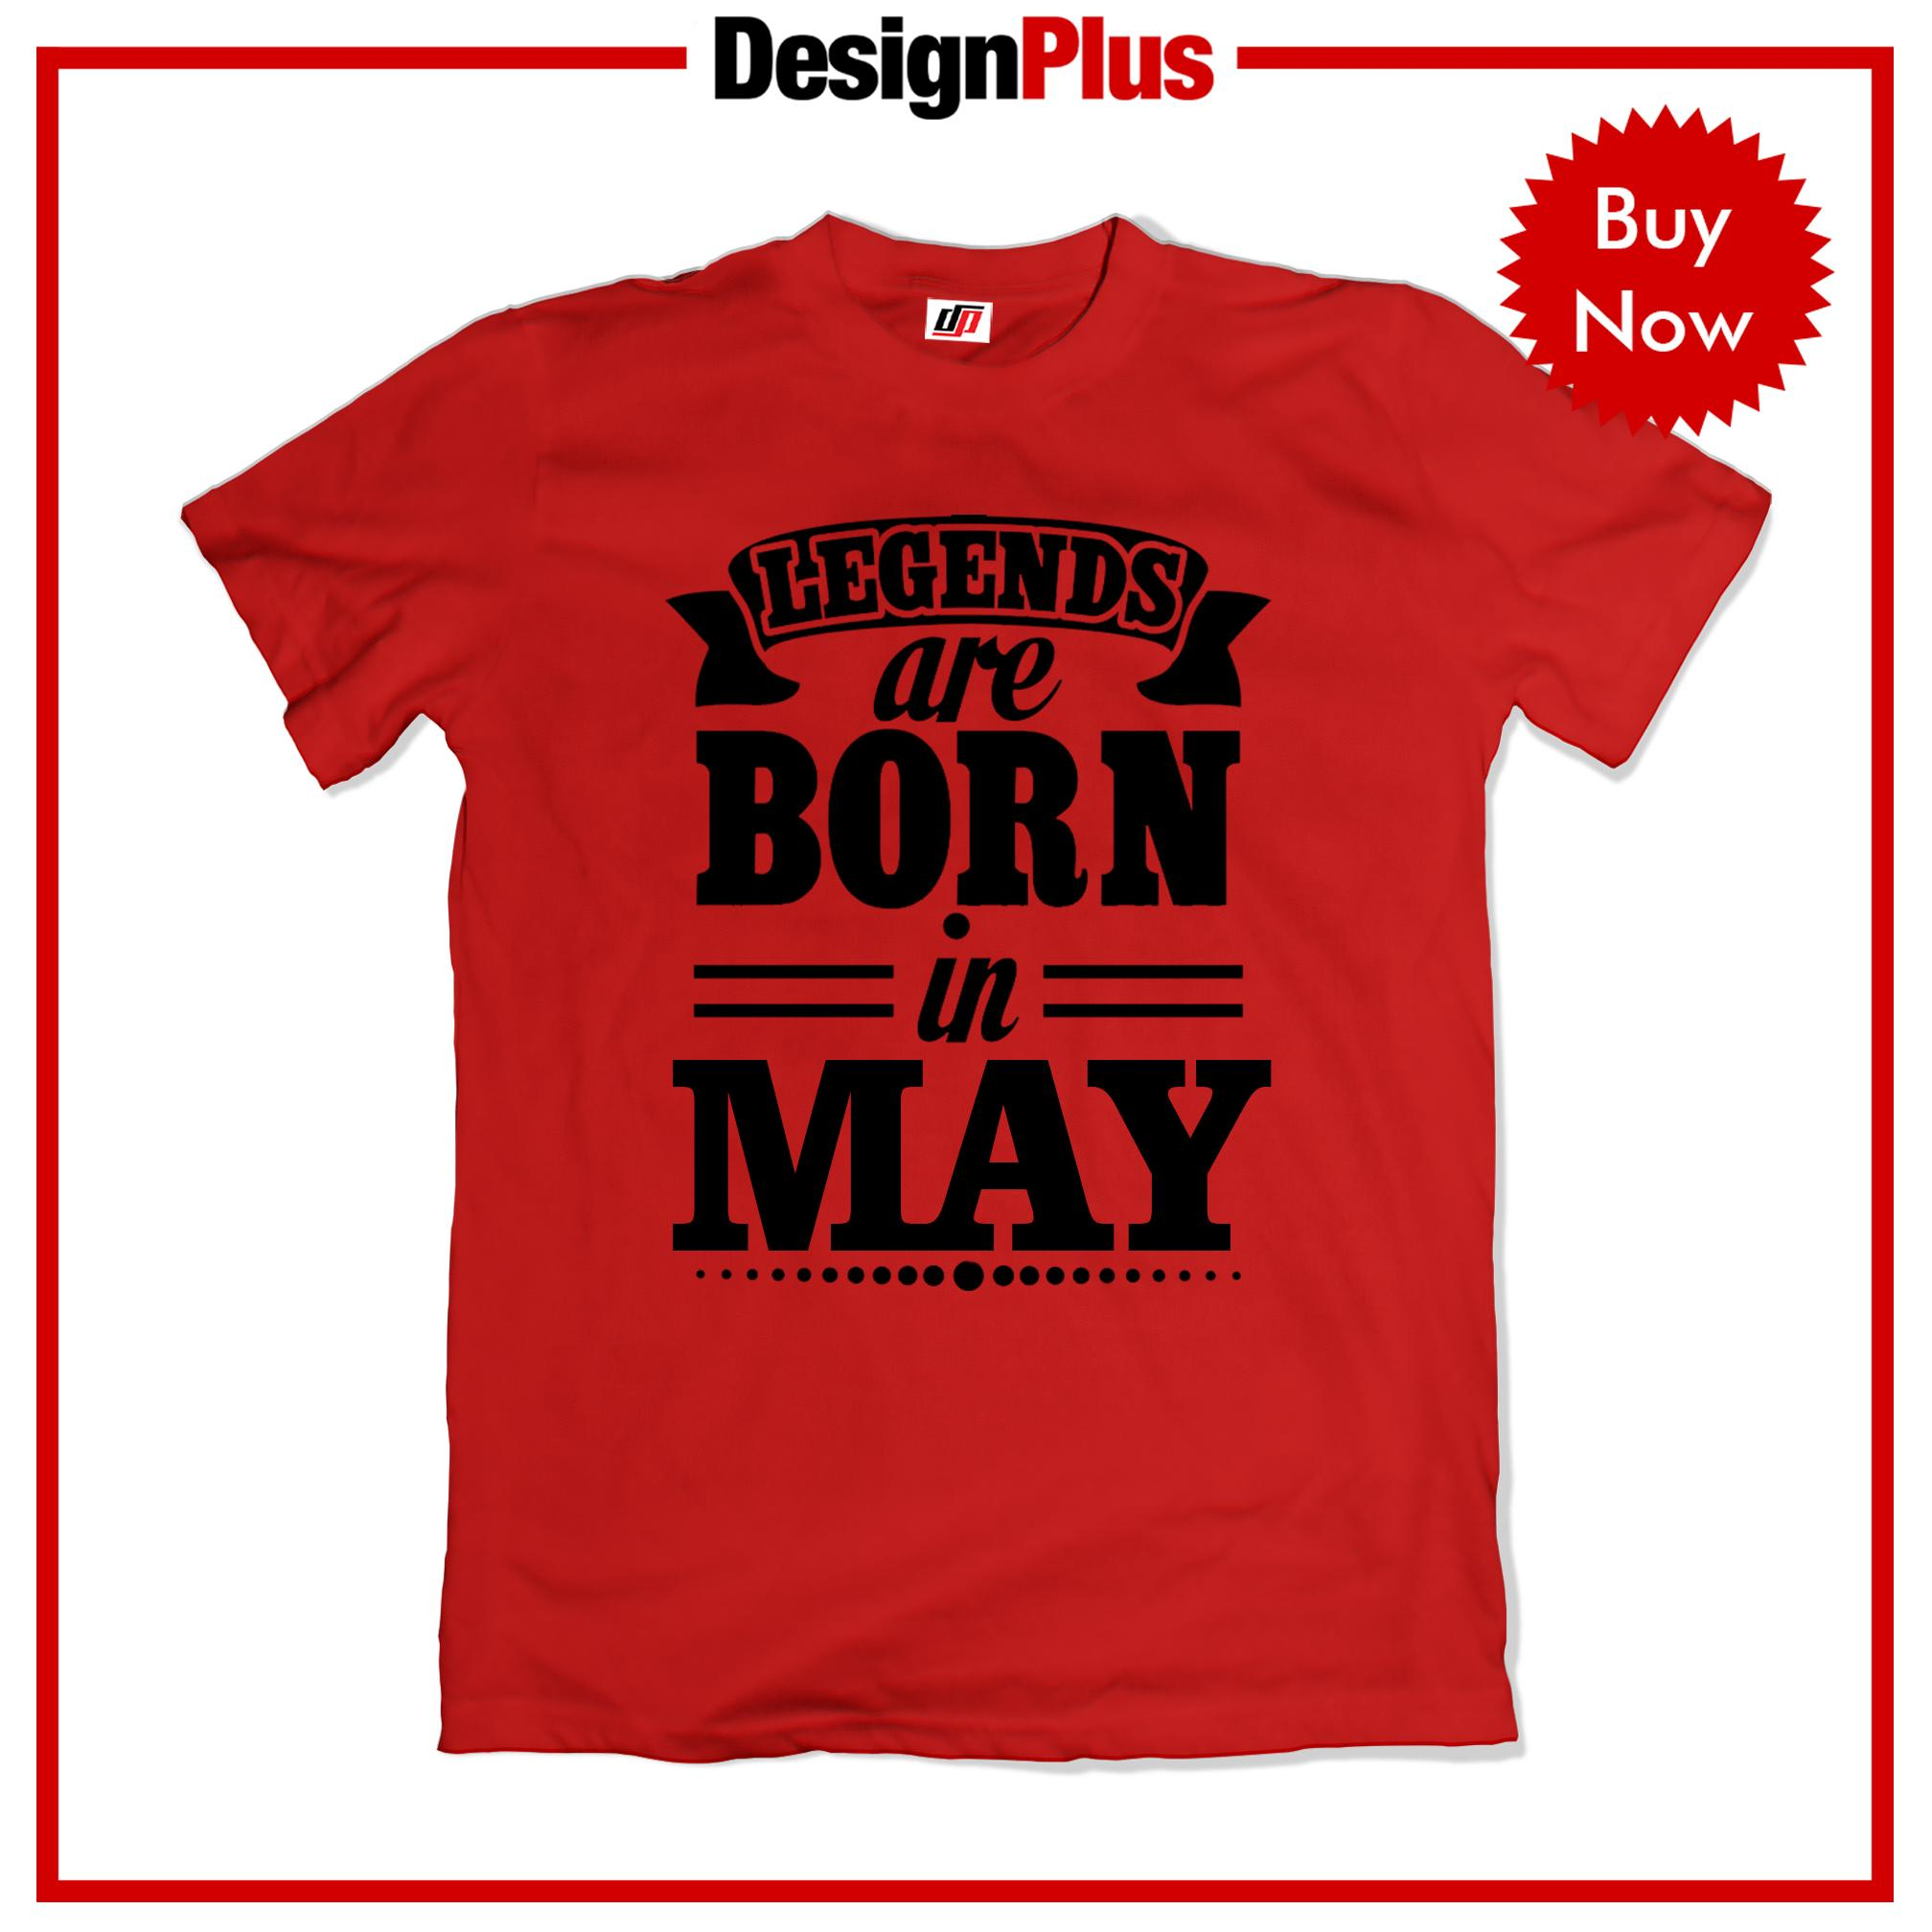 Product Details Of DesignPlus Legends Are Born 04 In May Statement T Shirt Mens